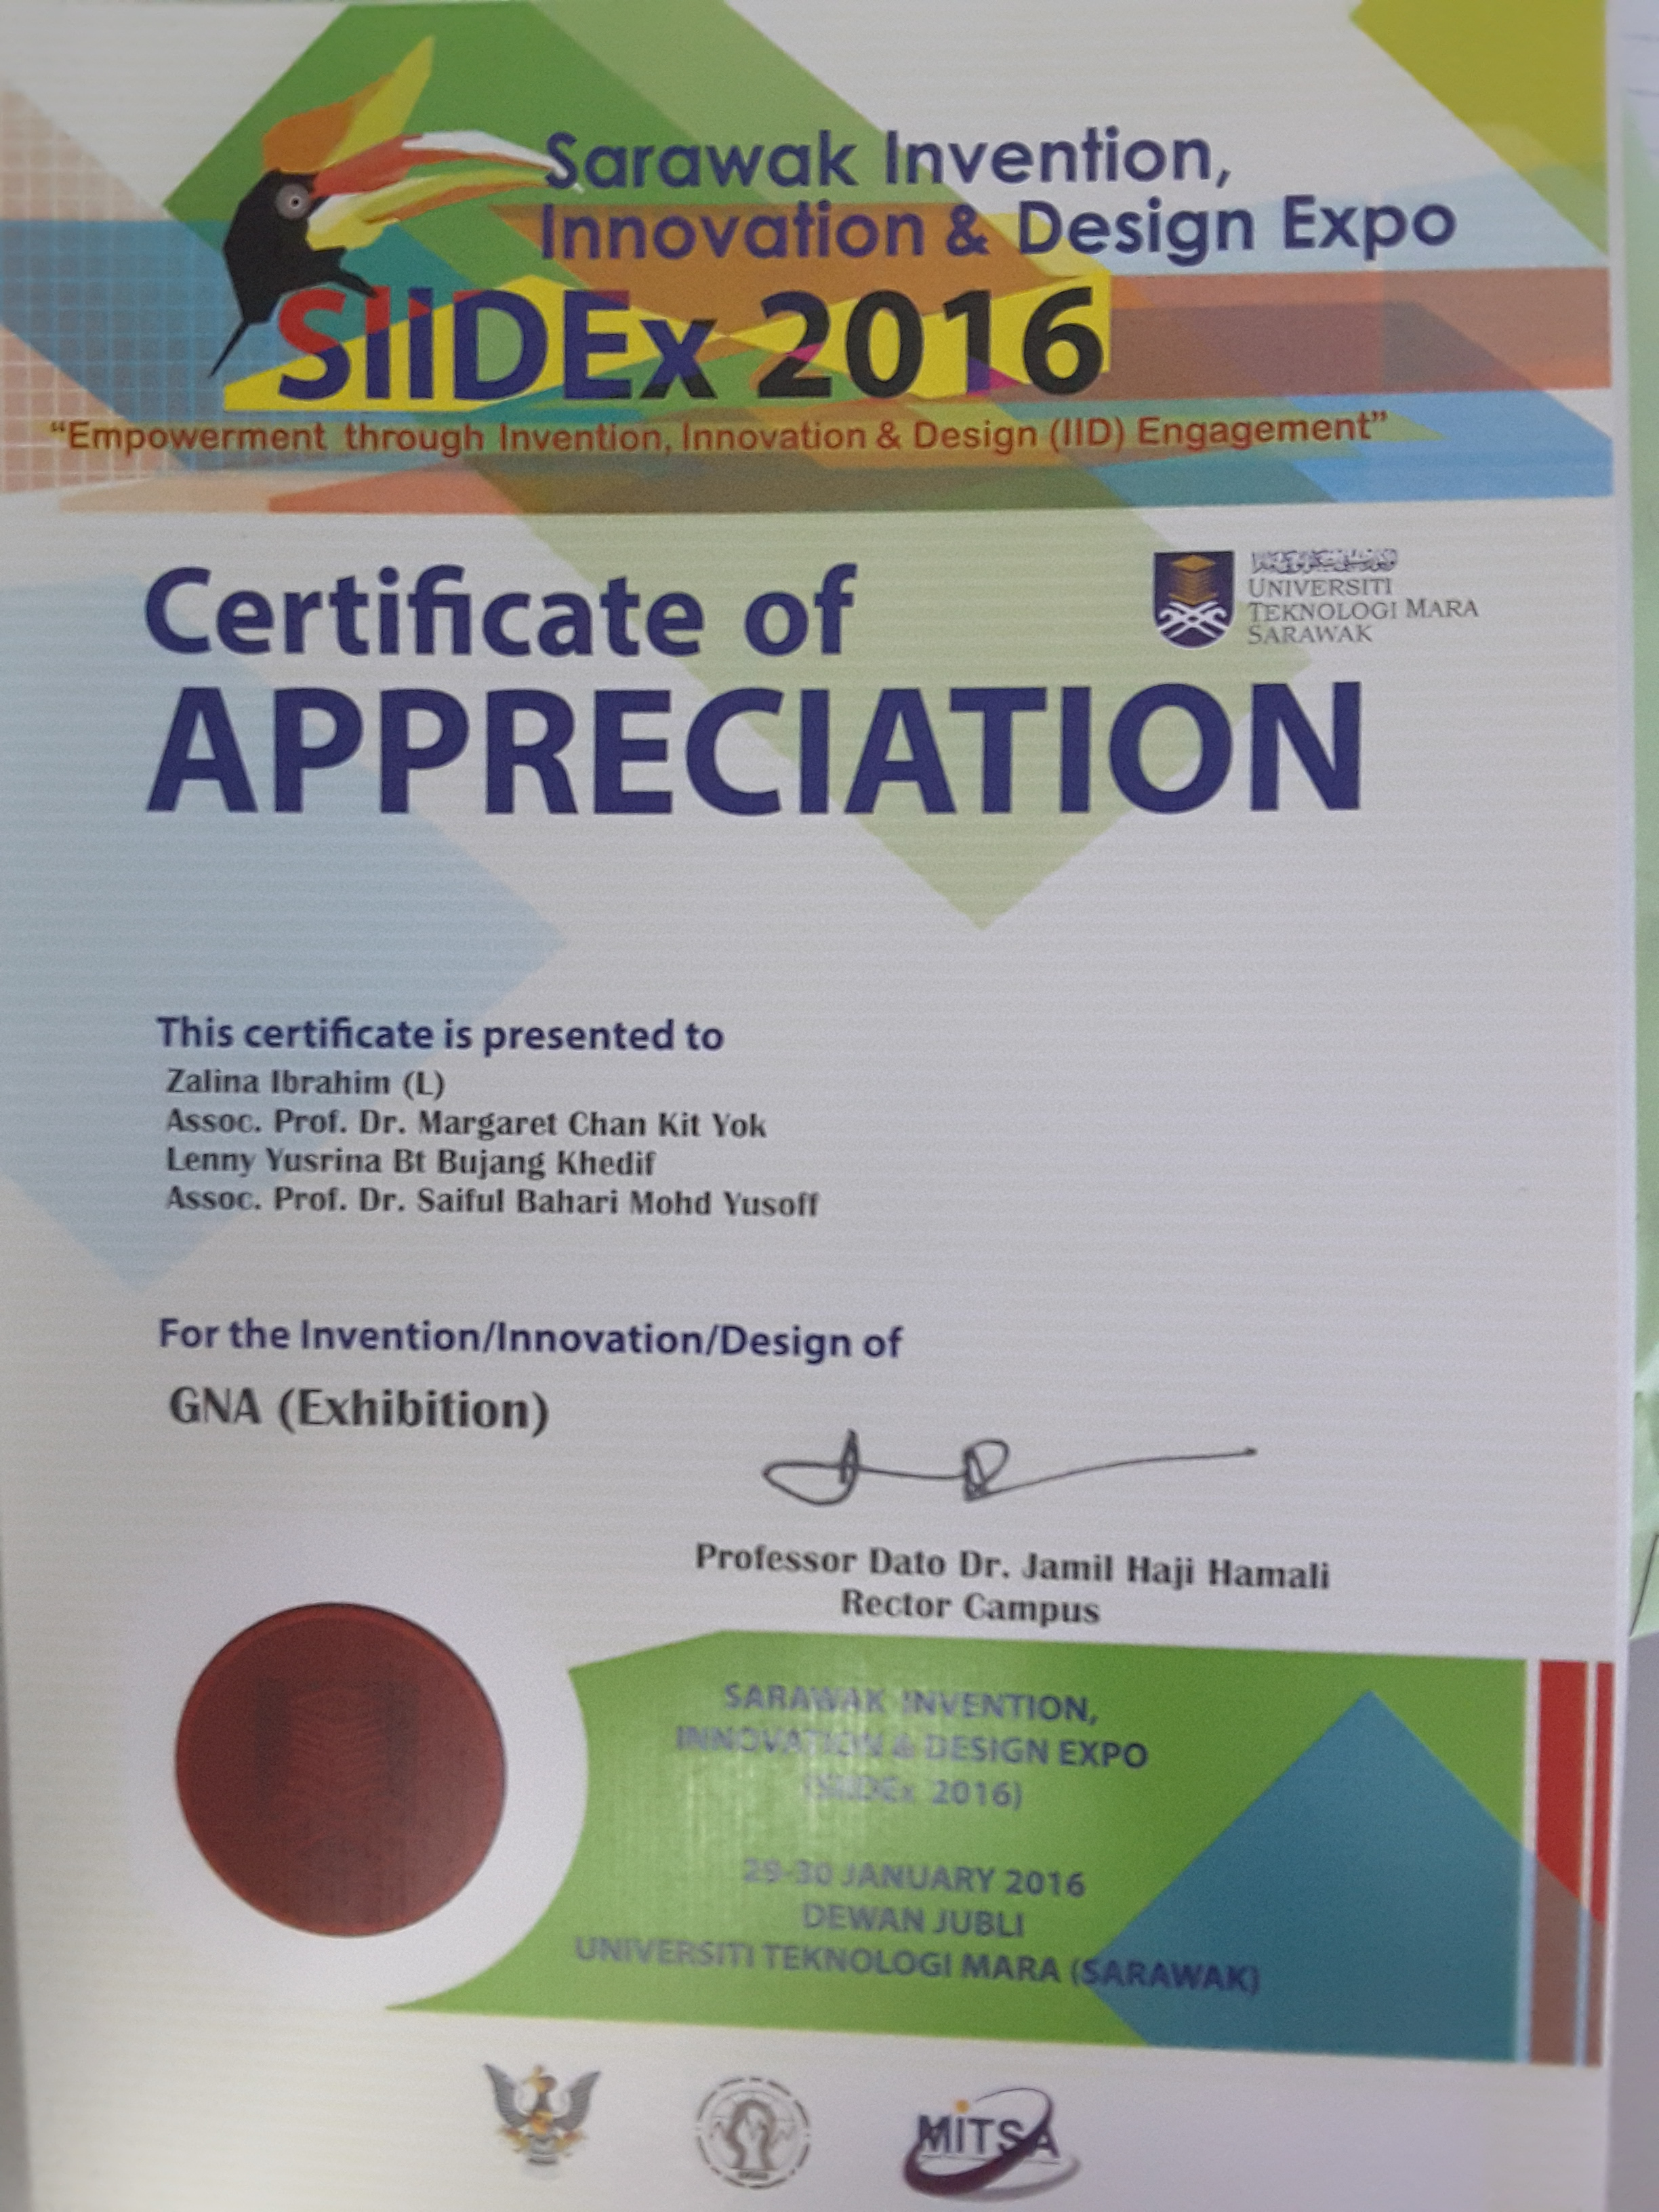 Relation Http 13225 Title A Handbook On Community Bagus Cling Wrap Box 30 Cm X M Polyethylene Non Pvc Certificate 2015 Participation Iid Uitm Sarawak Gna